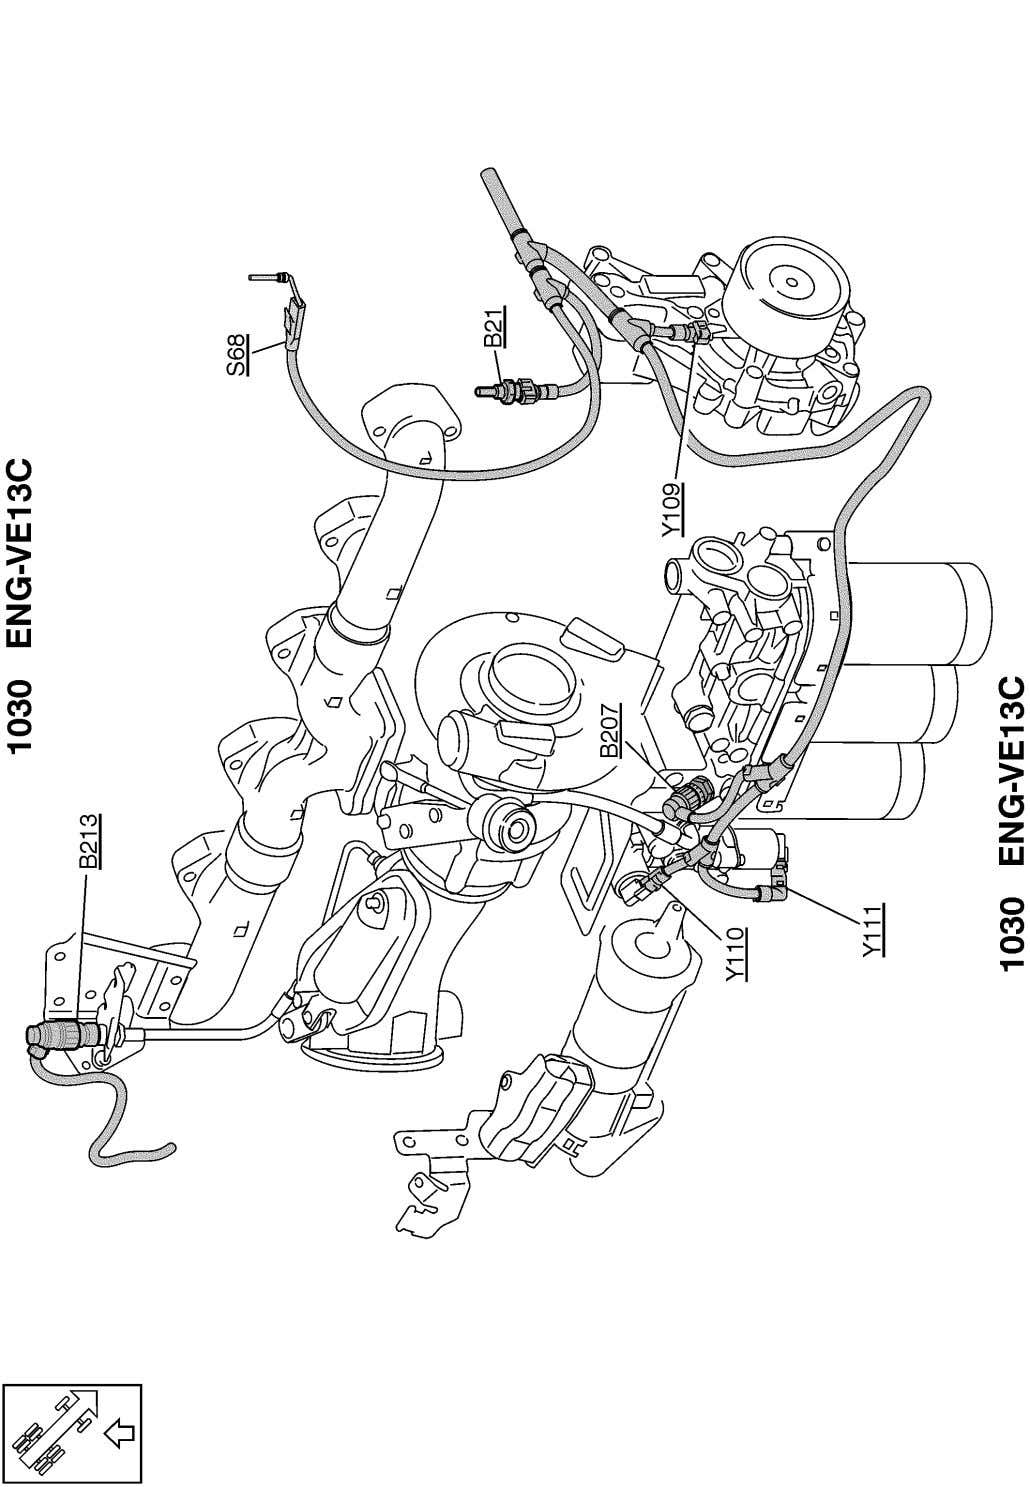 T3029521 Wiring diagram Page 163 (298)